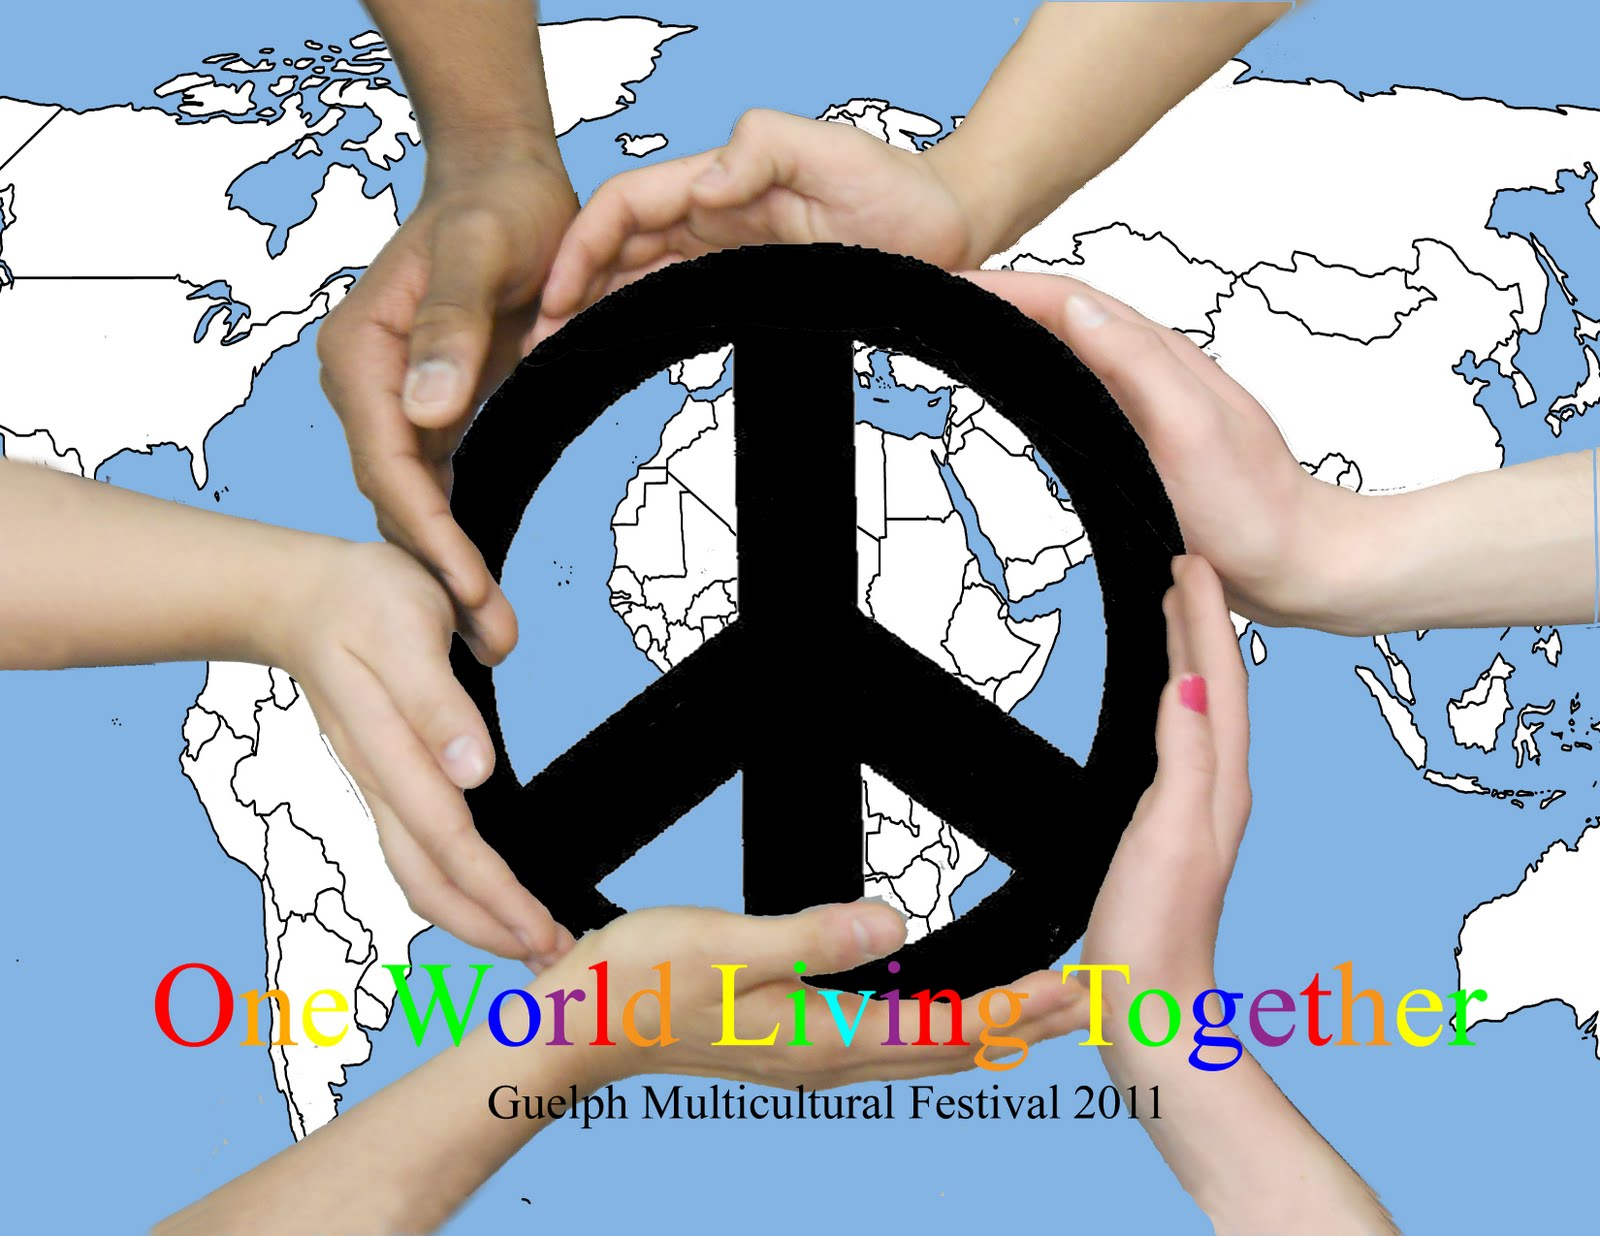 Jessica multicultural assignment for my multicultural poster i decided to make its main focus point a peace symbol surrounded by hands of different cultures i thought it was a good way to biocorpaavc Image collections